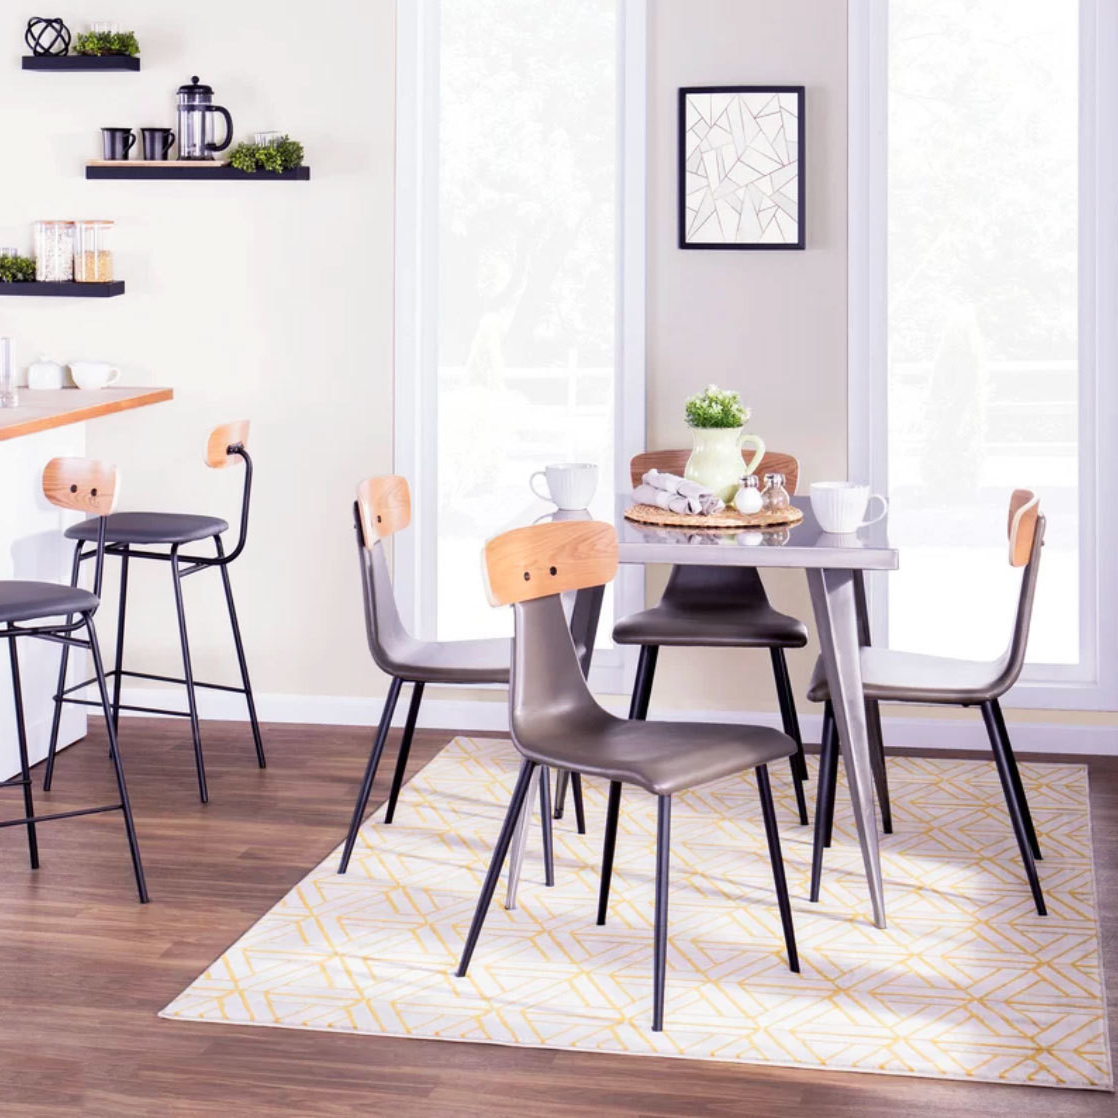 Most Recent Dining Tables For Small Spaces – Small Spaces – Lonny Pertaining To Taulbee 5 Piece Dining Sets (View 15 of 25)